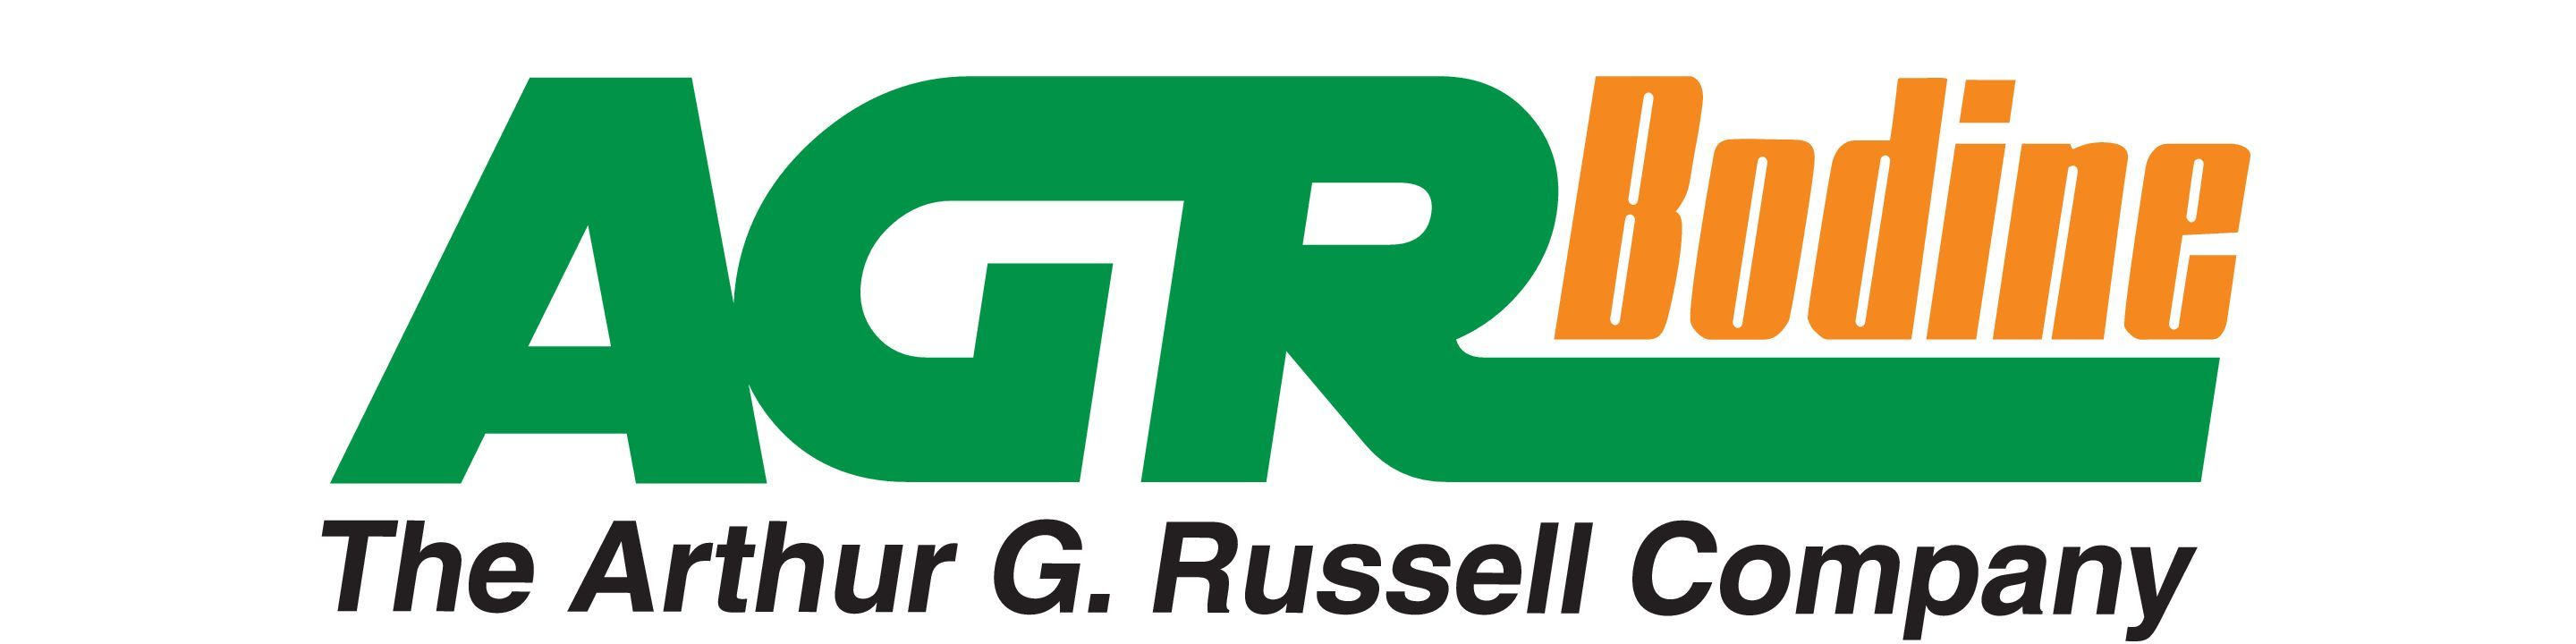 Arthur G. Russell Co. Inc.